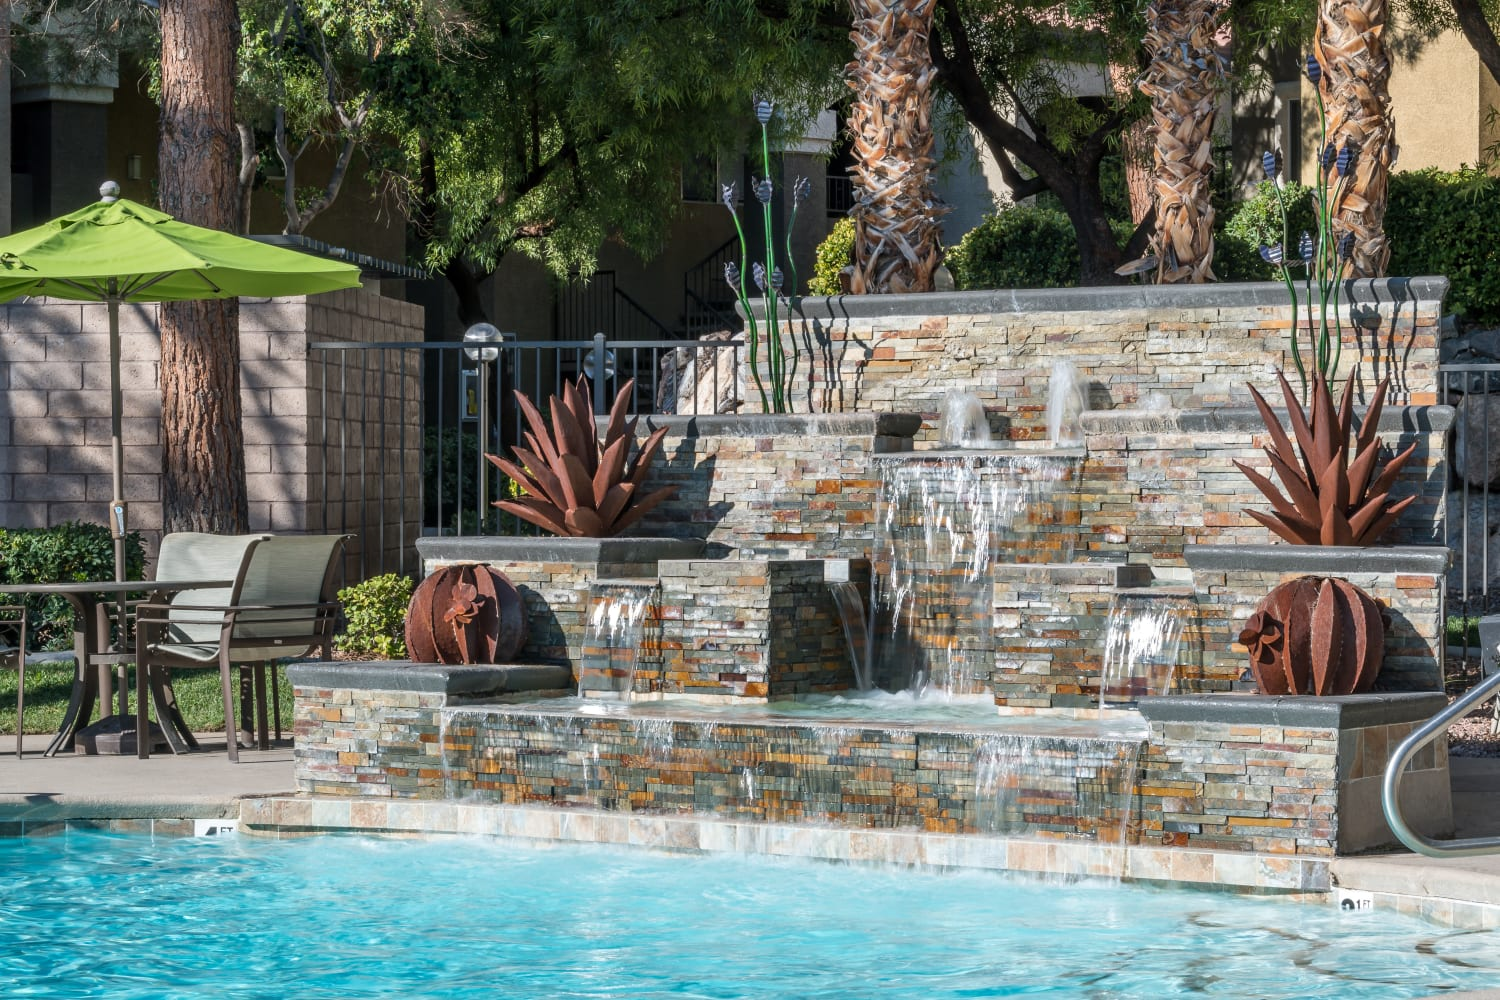 Swimming pool with waterfall feature at Rancho Destino Apartments in Las Vegas, Nevada